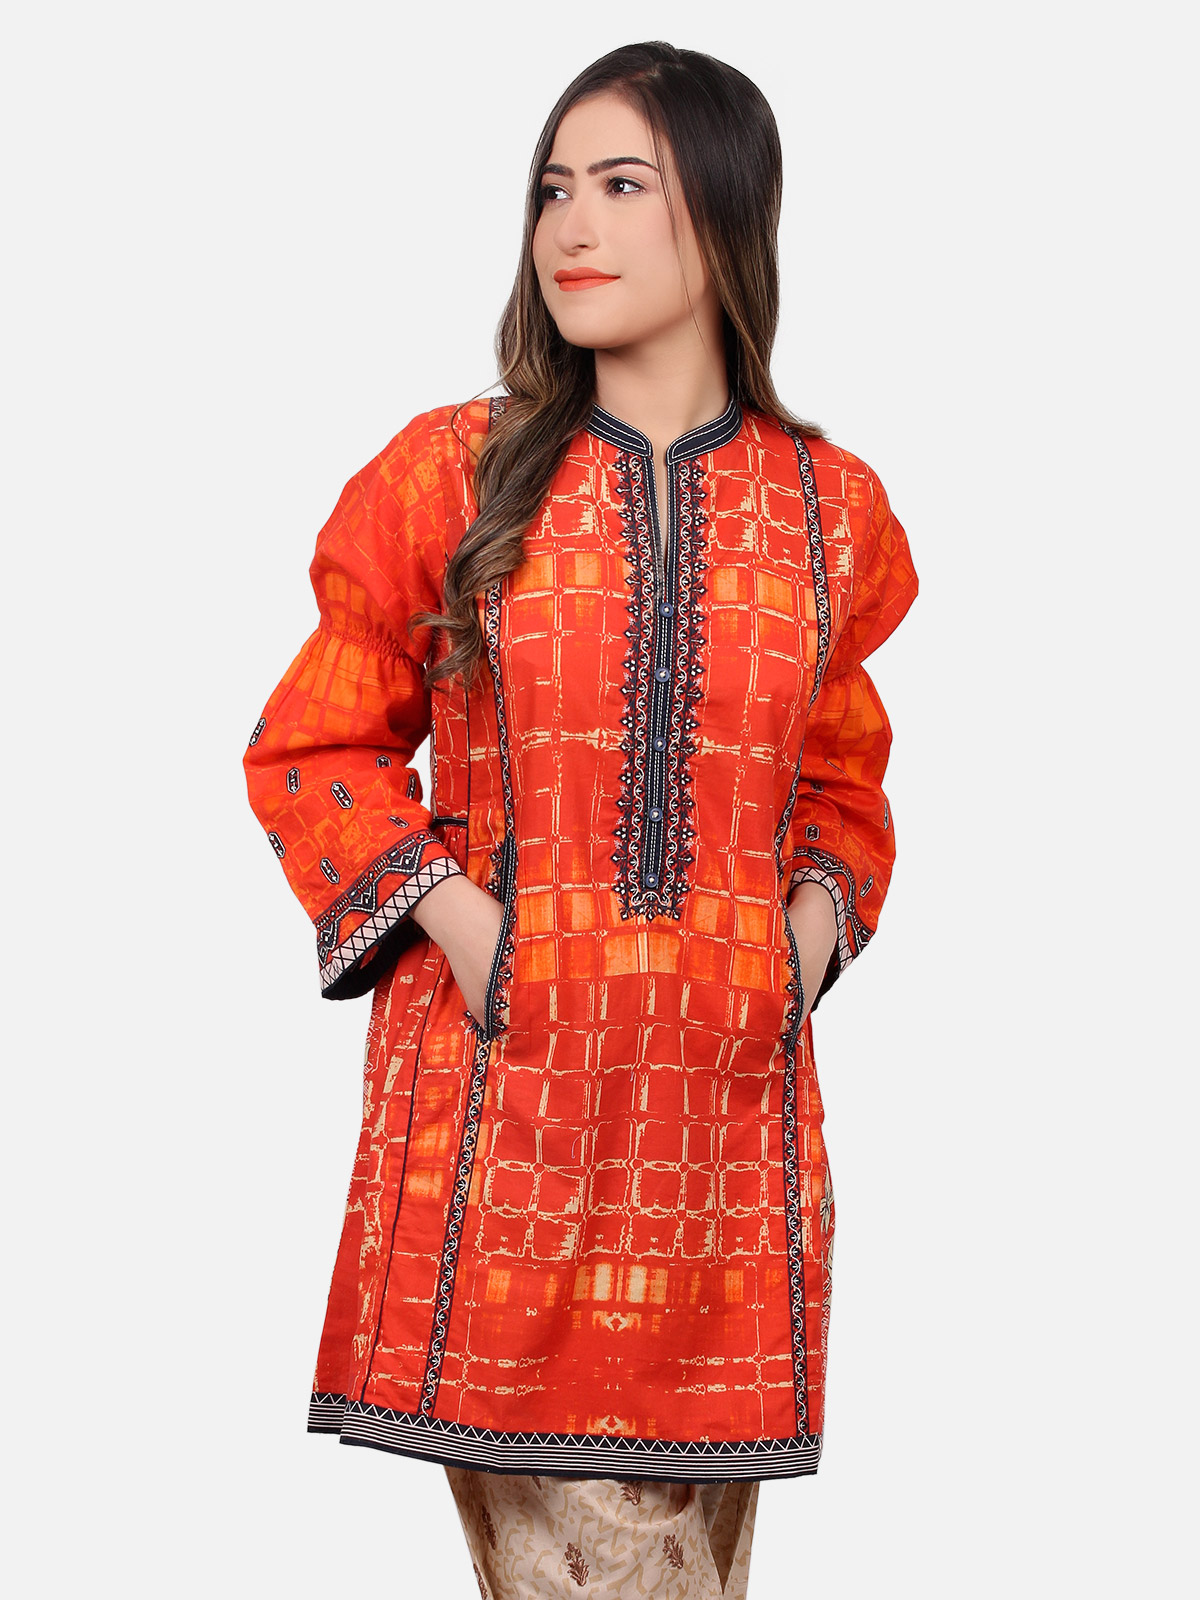 Stylish Funky Women Summer Casual Tops Kurtis 2019 Trends ...